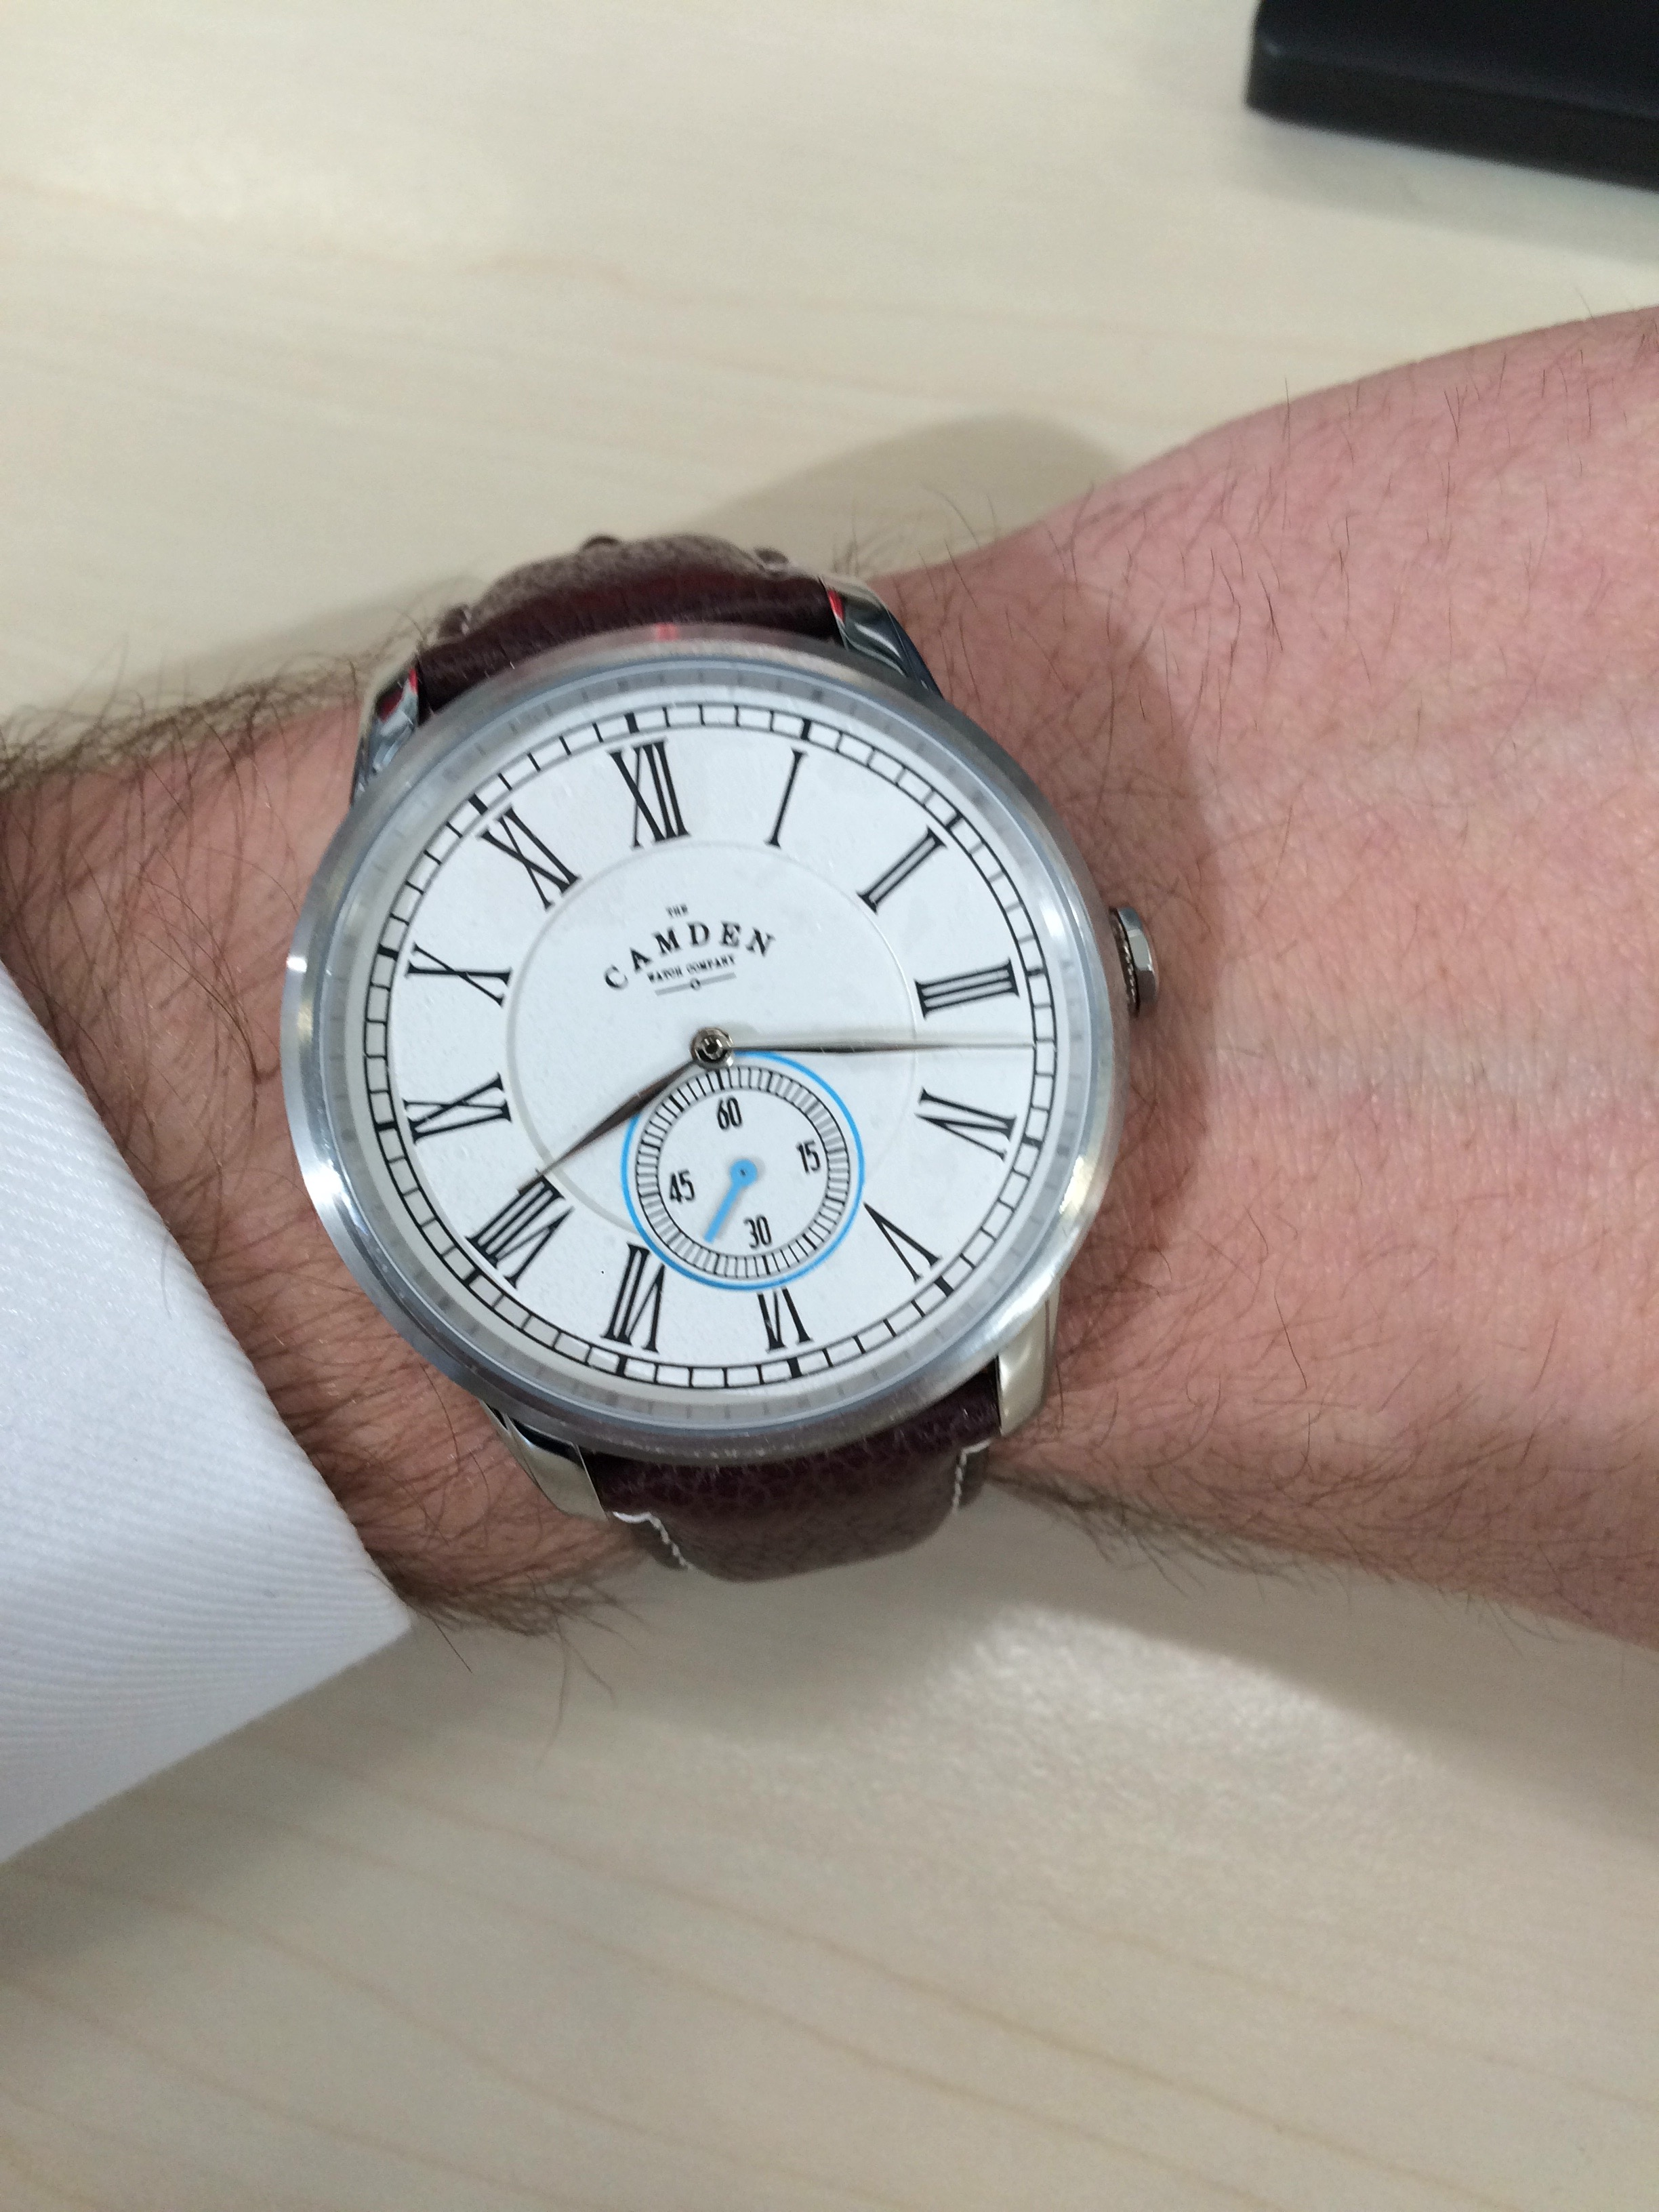 84f8f93d6 I just bought the Camden No. 29 for myself and I absolutely love it! The  classic look with clean and simplistic roman numerals combined with the  coloured ...